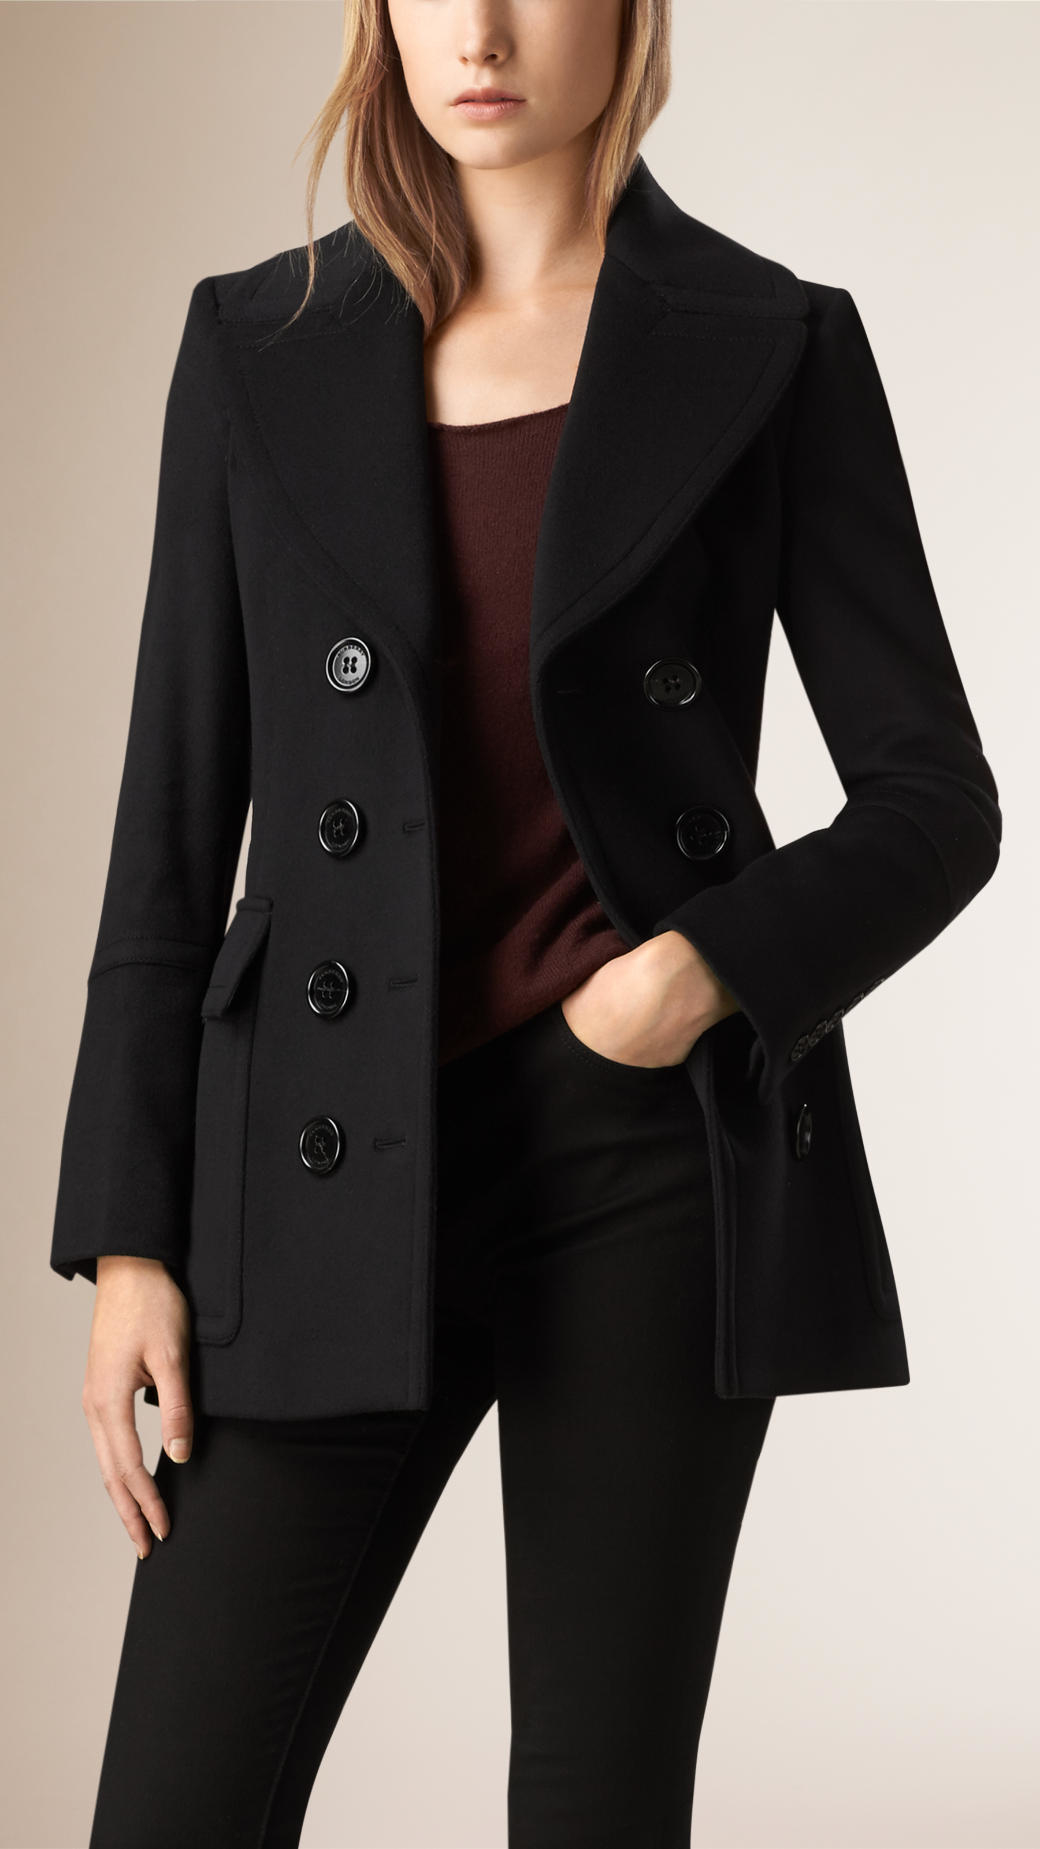 Burberry Wool Cashmere Pea Coat in Black | Lyst